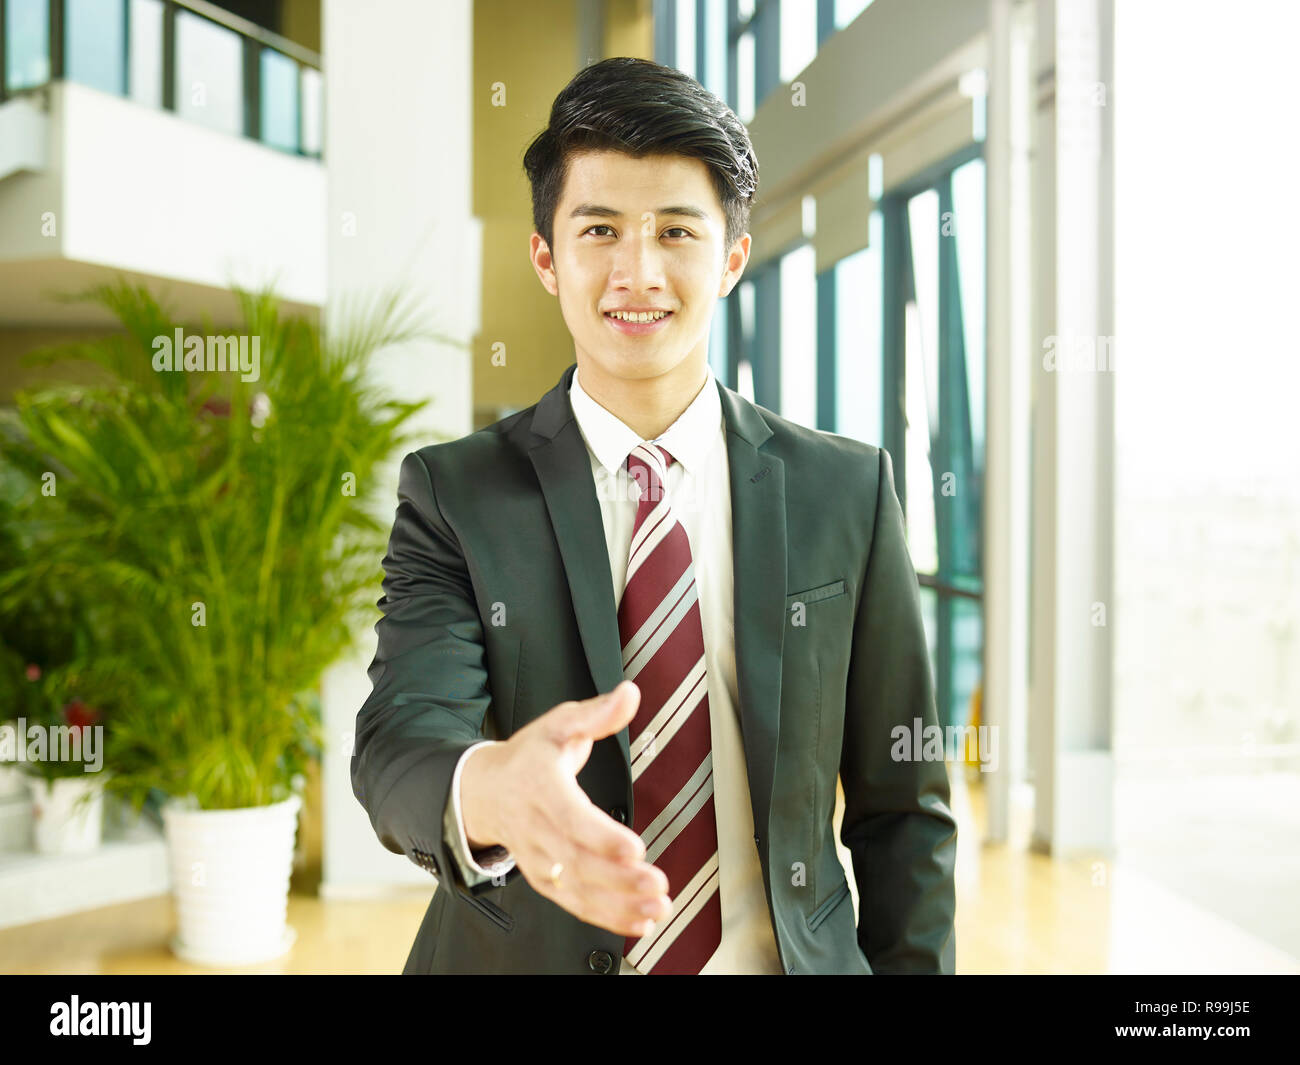 young asian corporate executive reaching out for a handshake, looking at camera smiling. - Stock Image